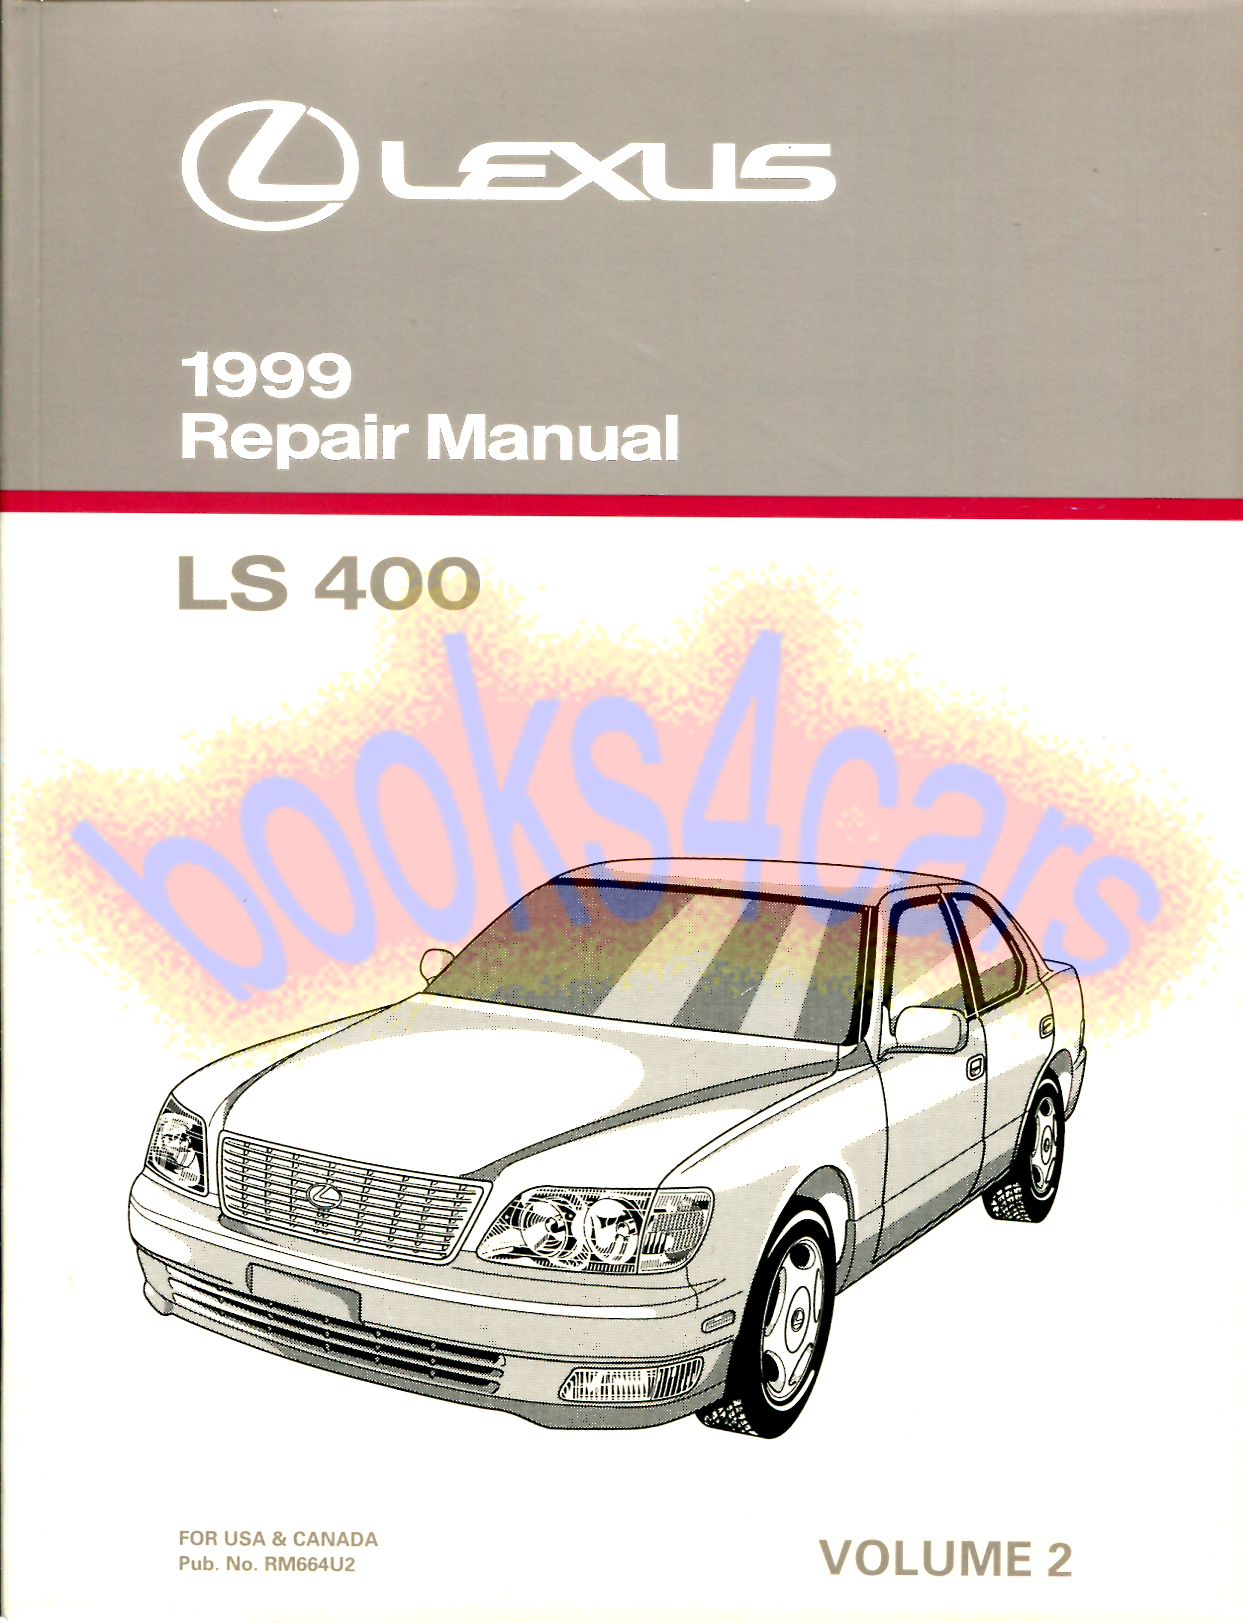 Lexus Ls400 Shop Service Manuals At 1999 Lx470 Parts Diagram Wiring Schematic 99 Repair Manual By For Engine Chassis Body Volume 2 00245rm664u2